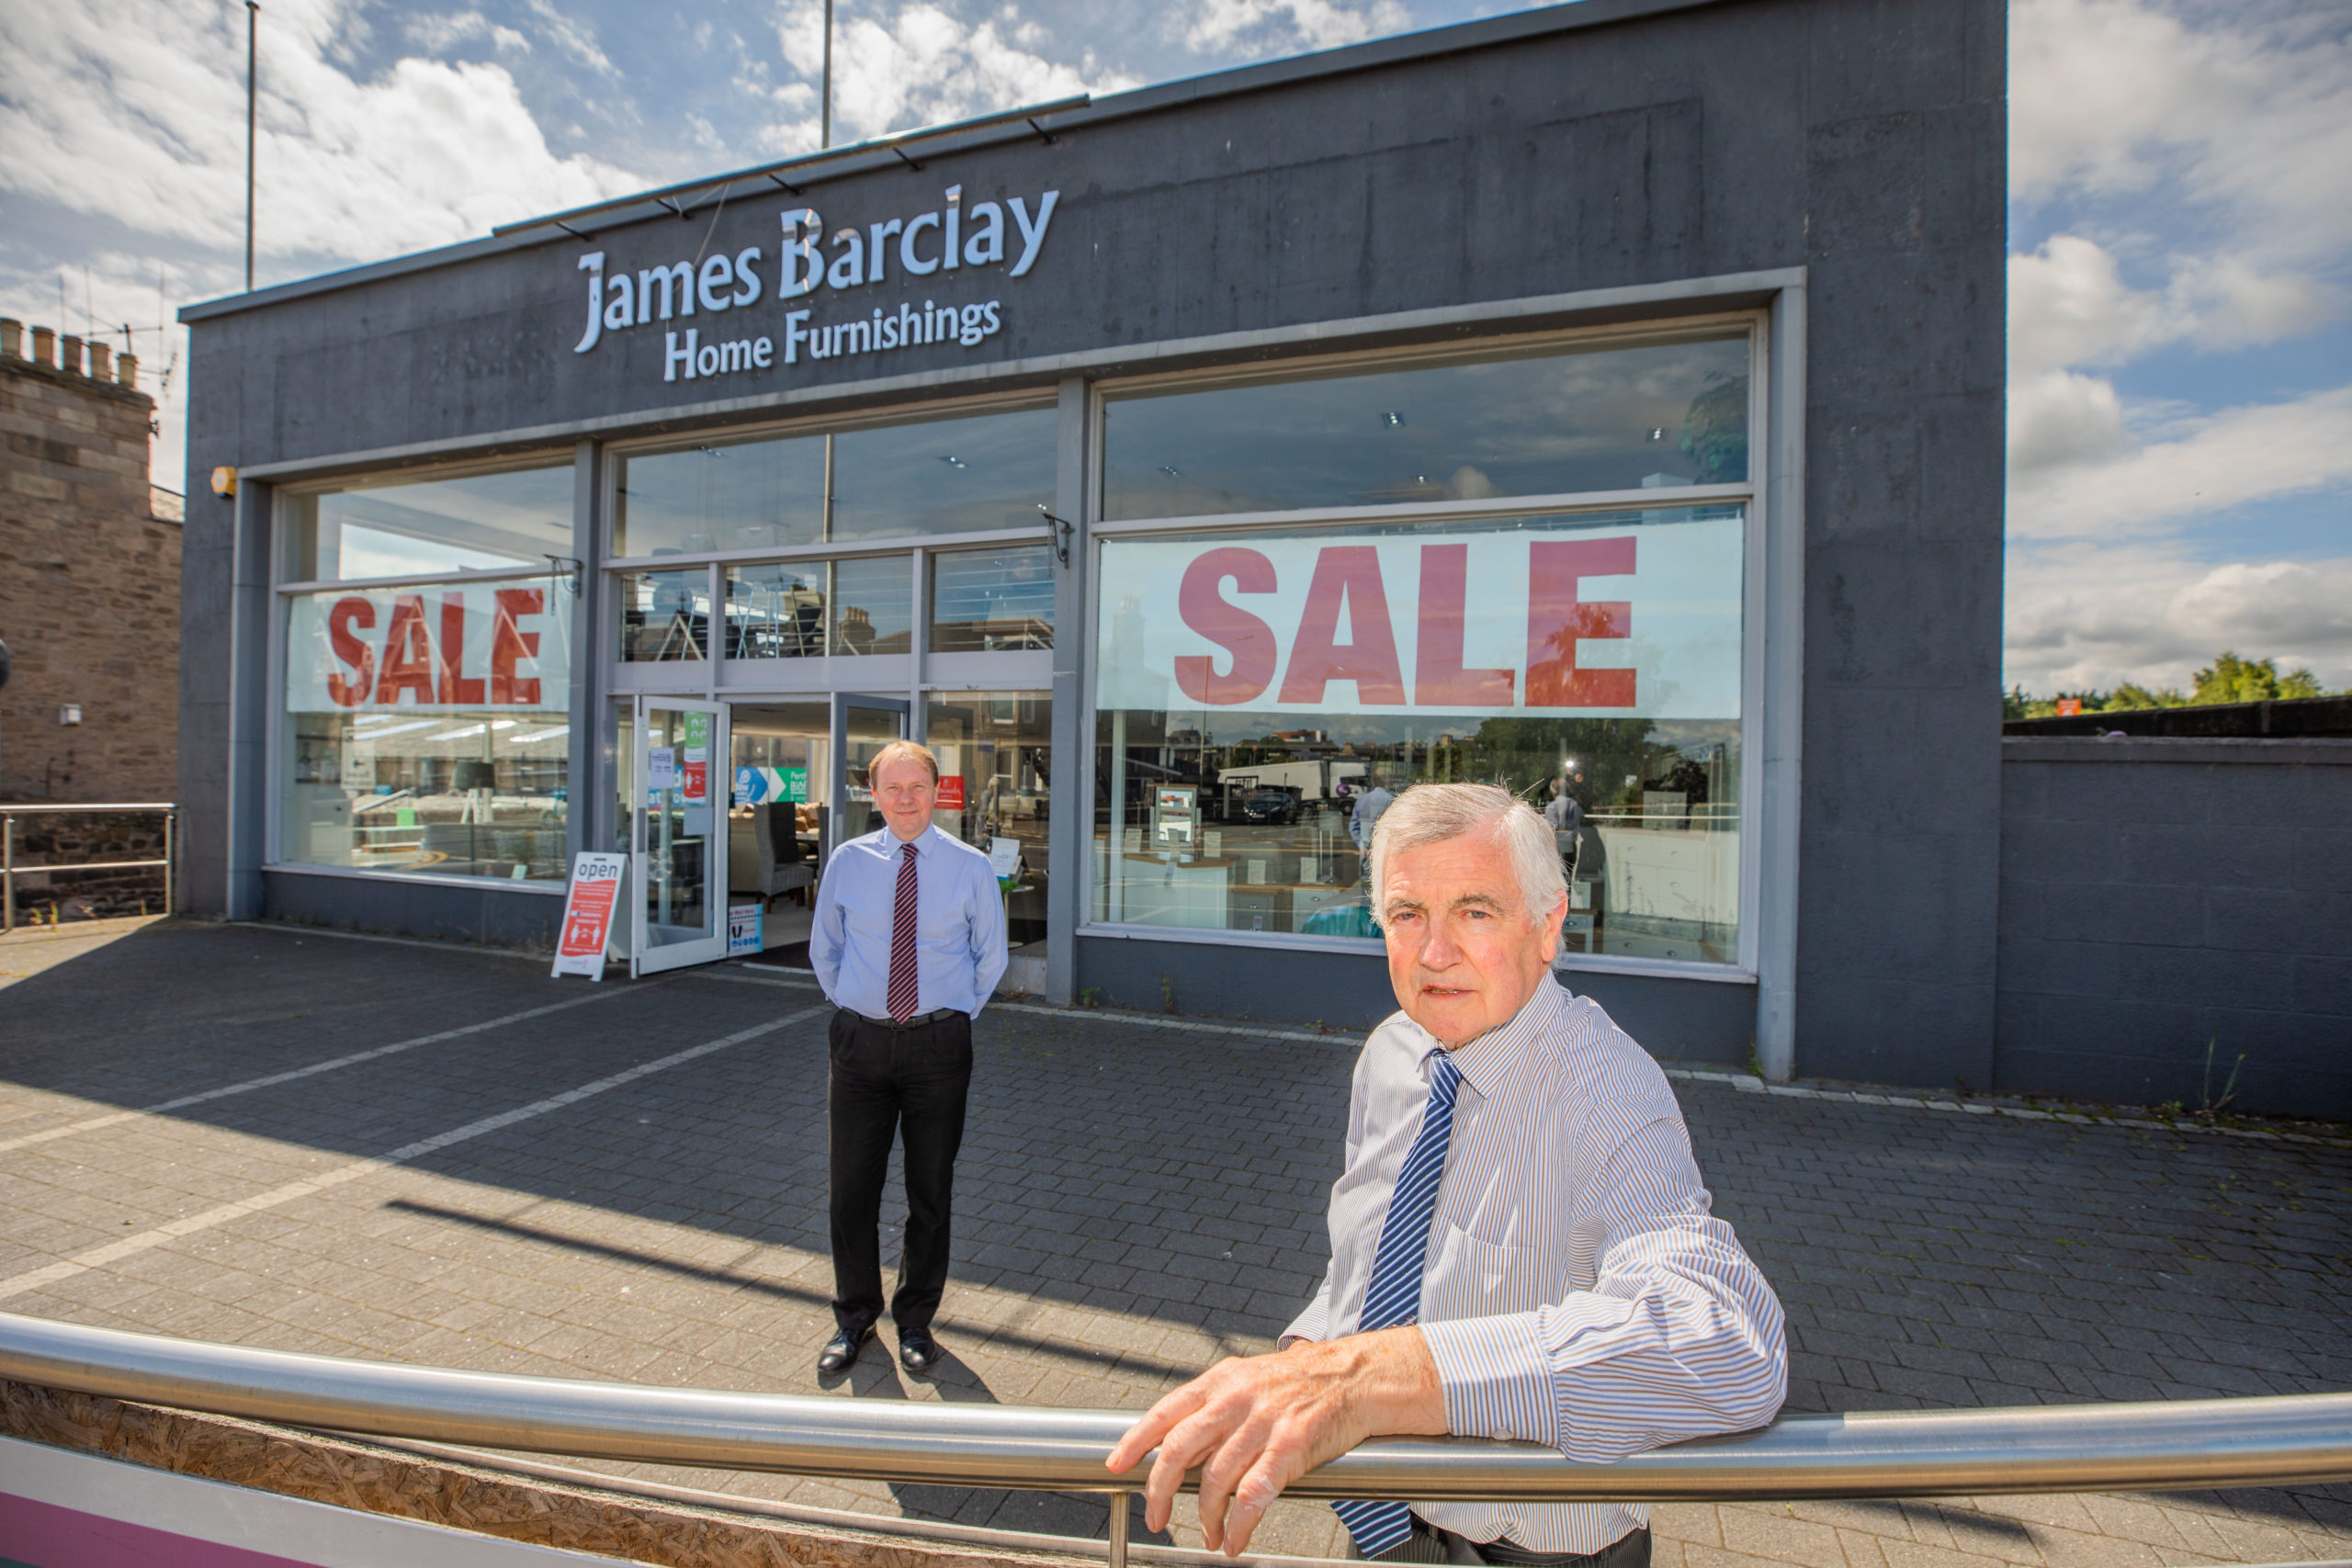 James Barclay (right) and manager John Hodge at James Barclay Home Furnishings, Perth.